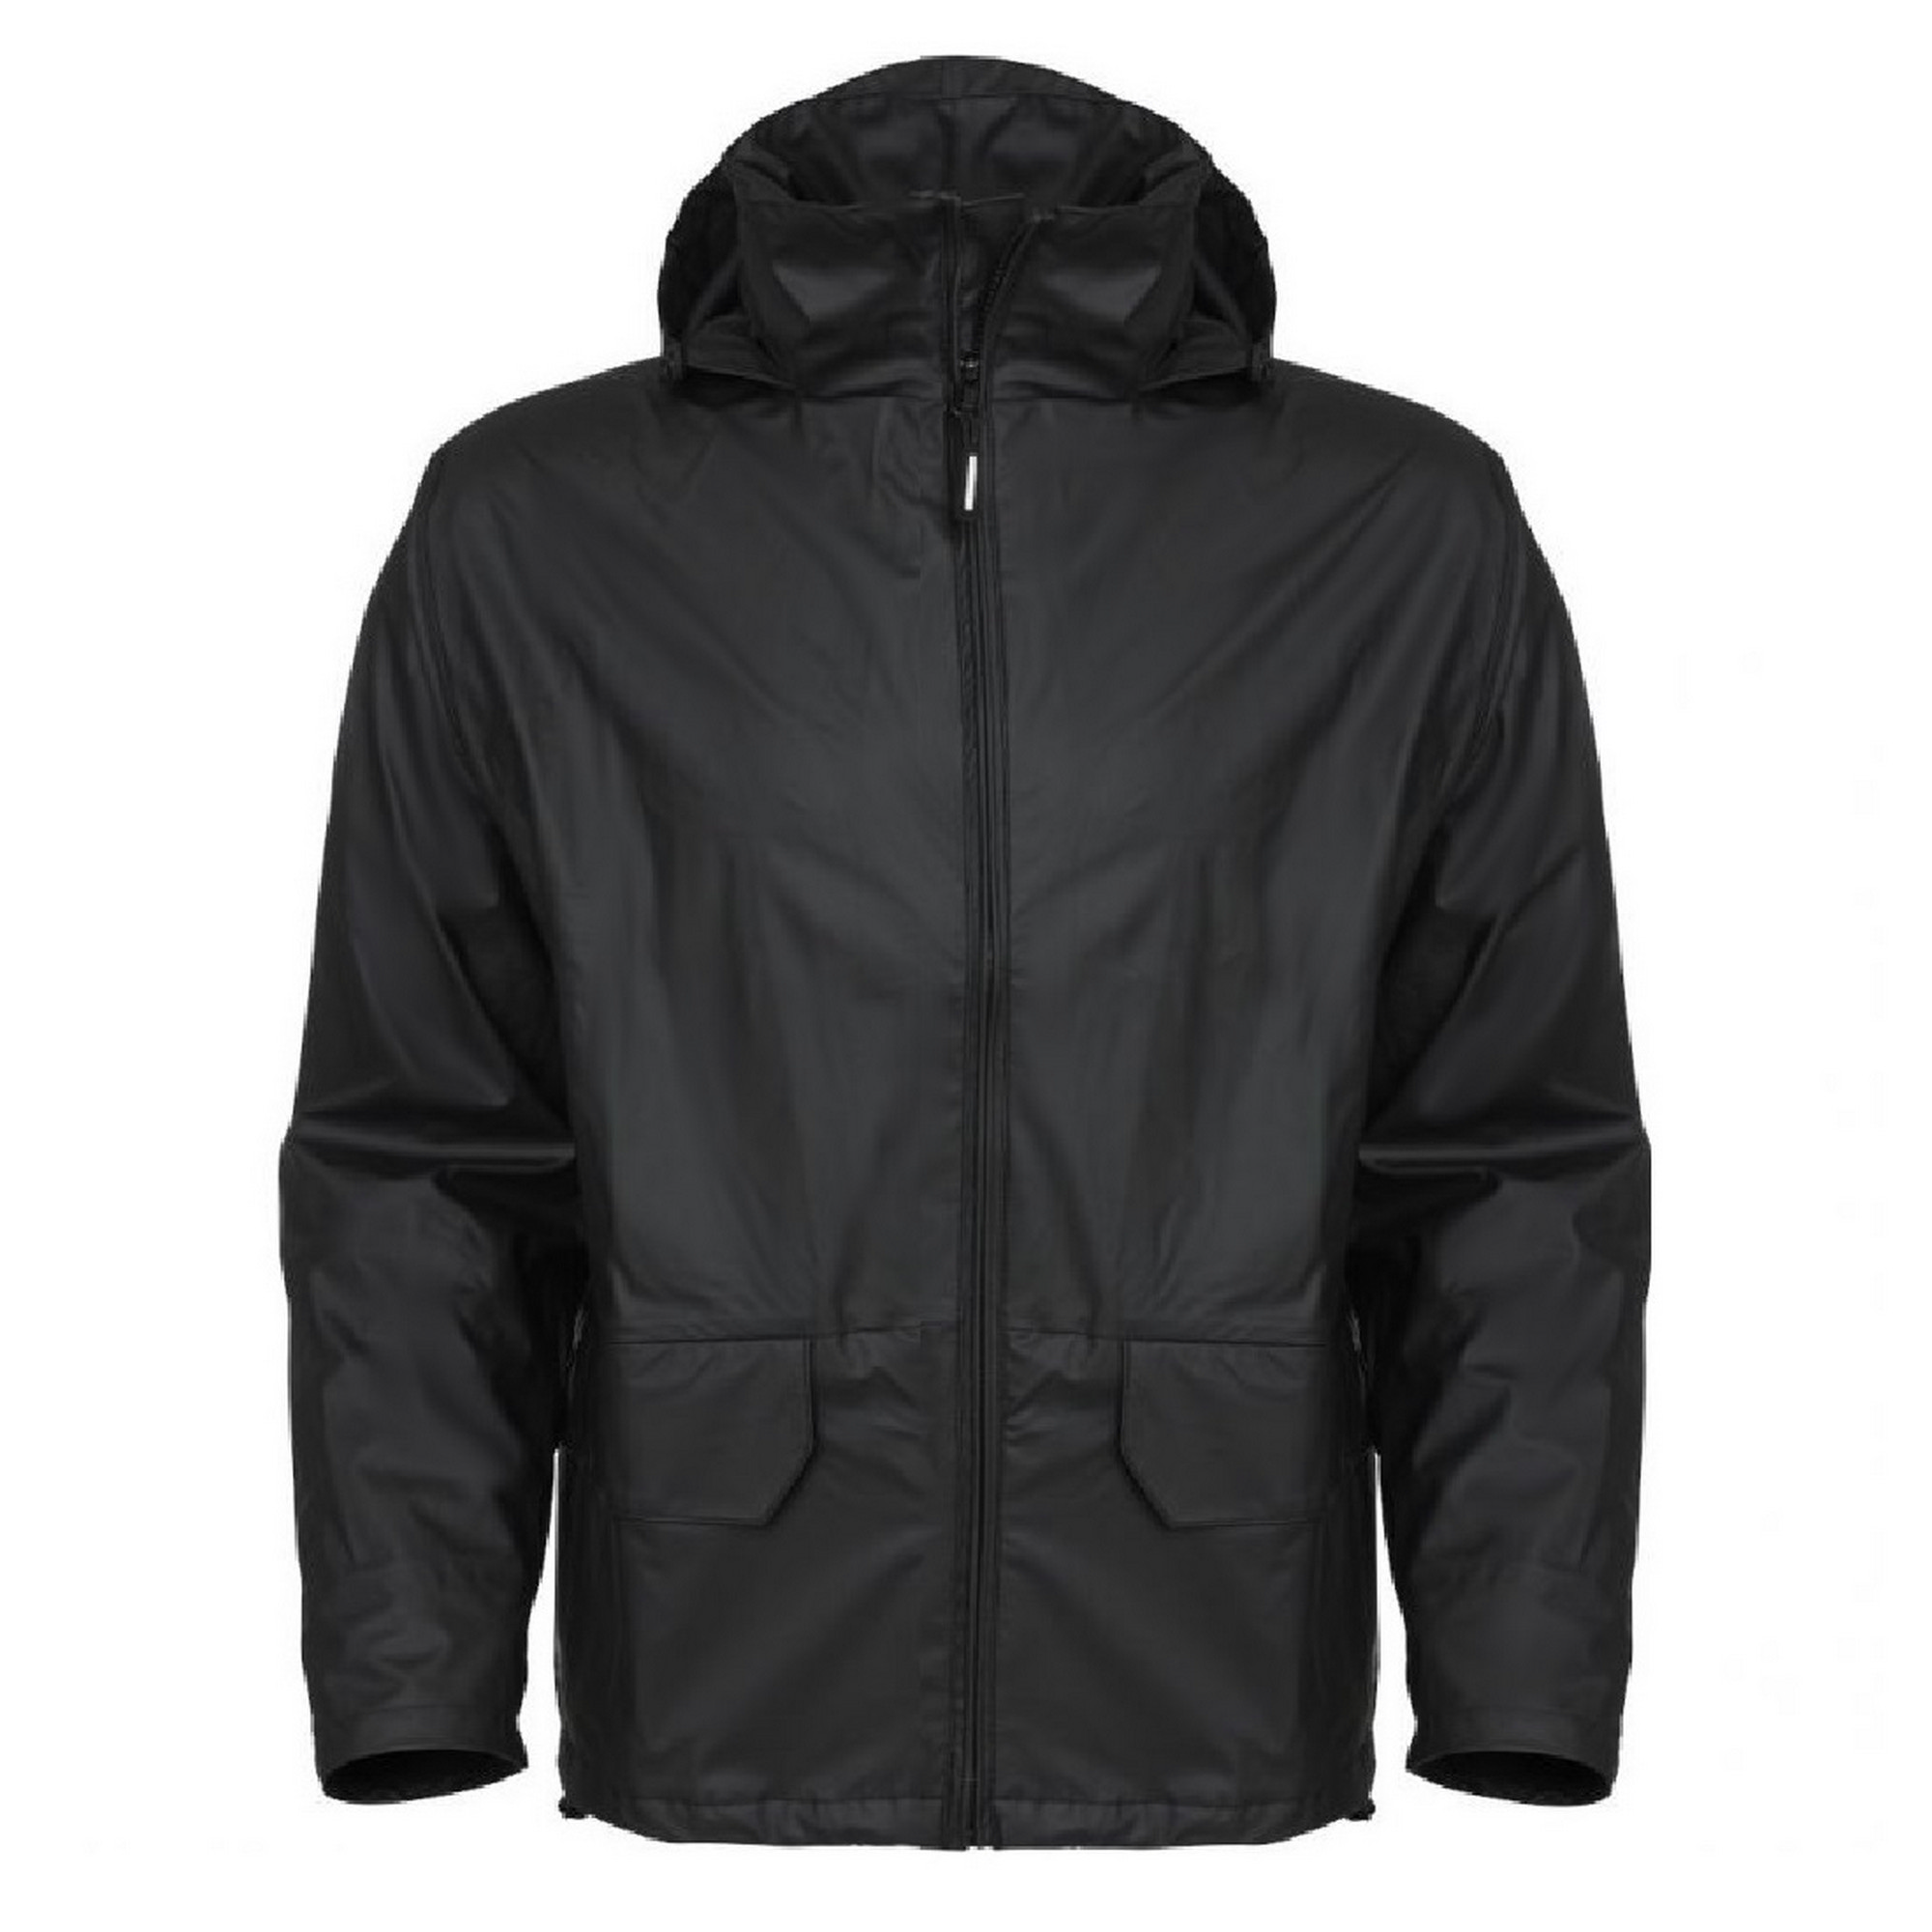 helly hansen voss casual zip up hooded waterproof jacket coat mens workwear ebay. Black Bedroom Furniture Sets. Home Design Ideas